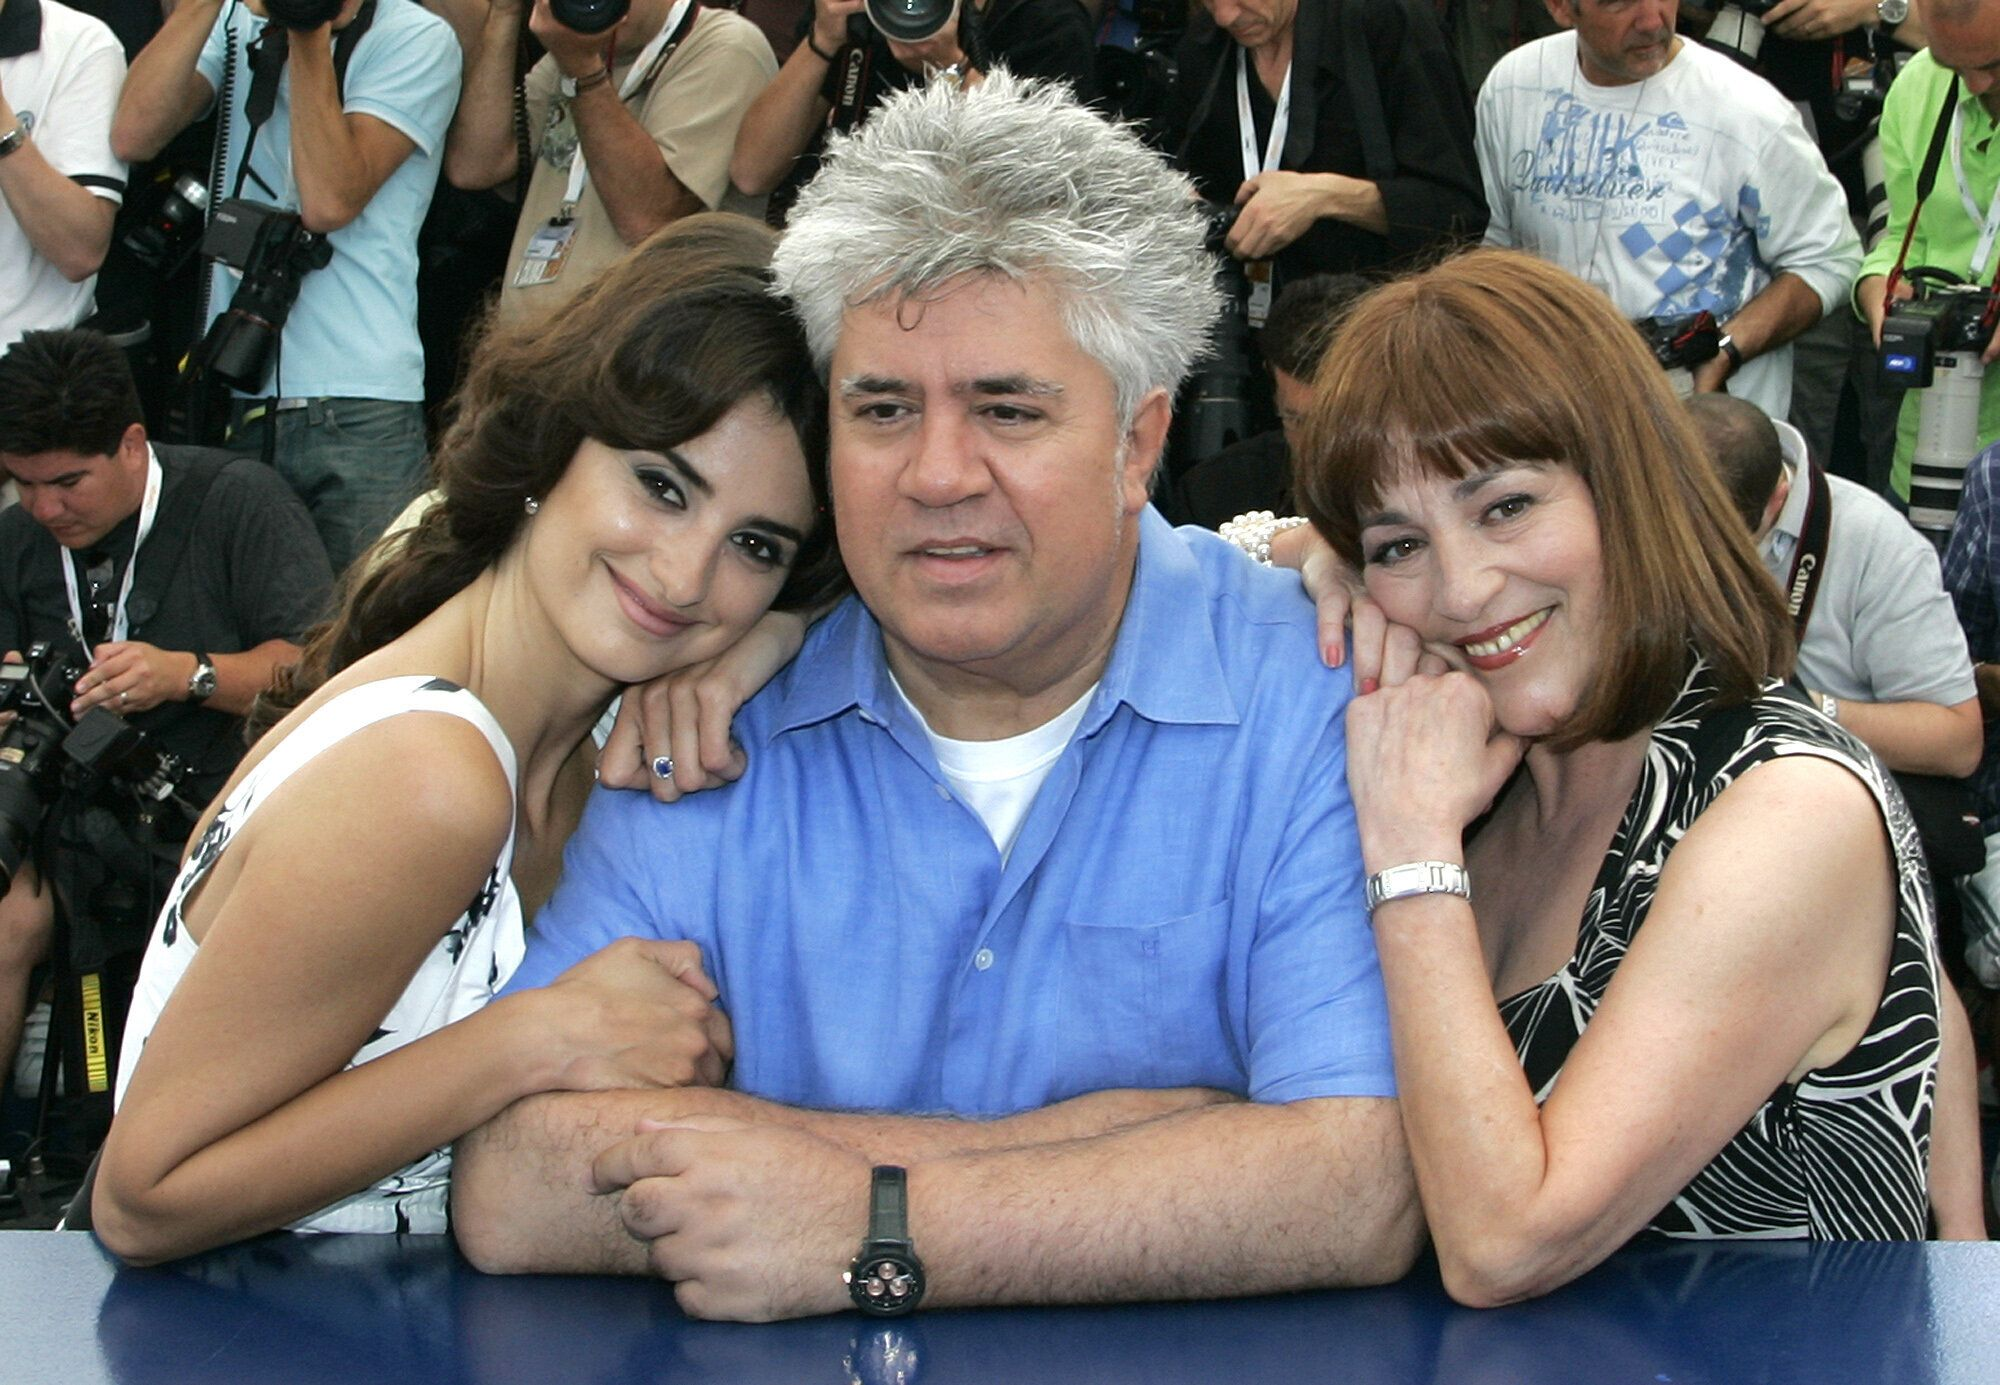 Penélope Cruz, Pedro Almodóvar and Carmen Maura at the Cannes Film Festival in 2006.